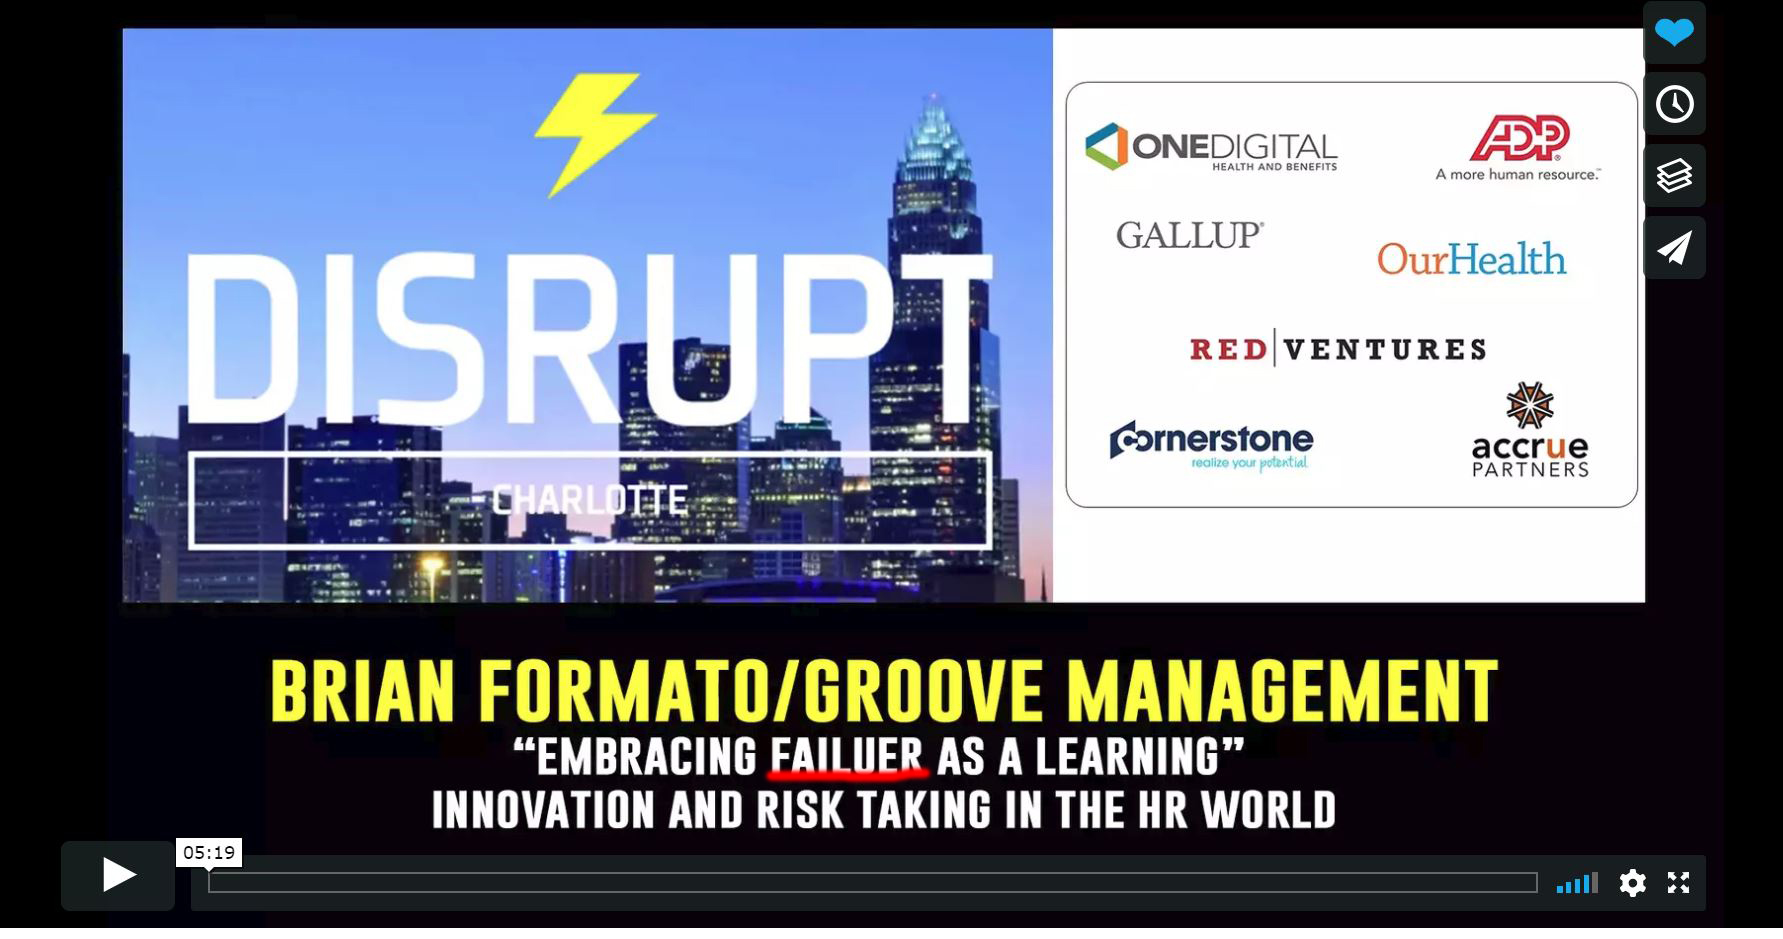 disrupt HR failure spelled wrong red.jpg